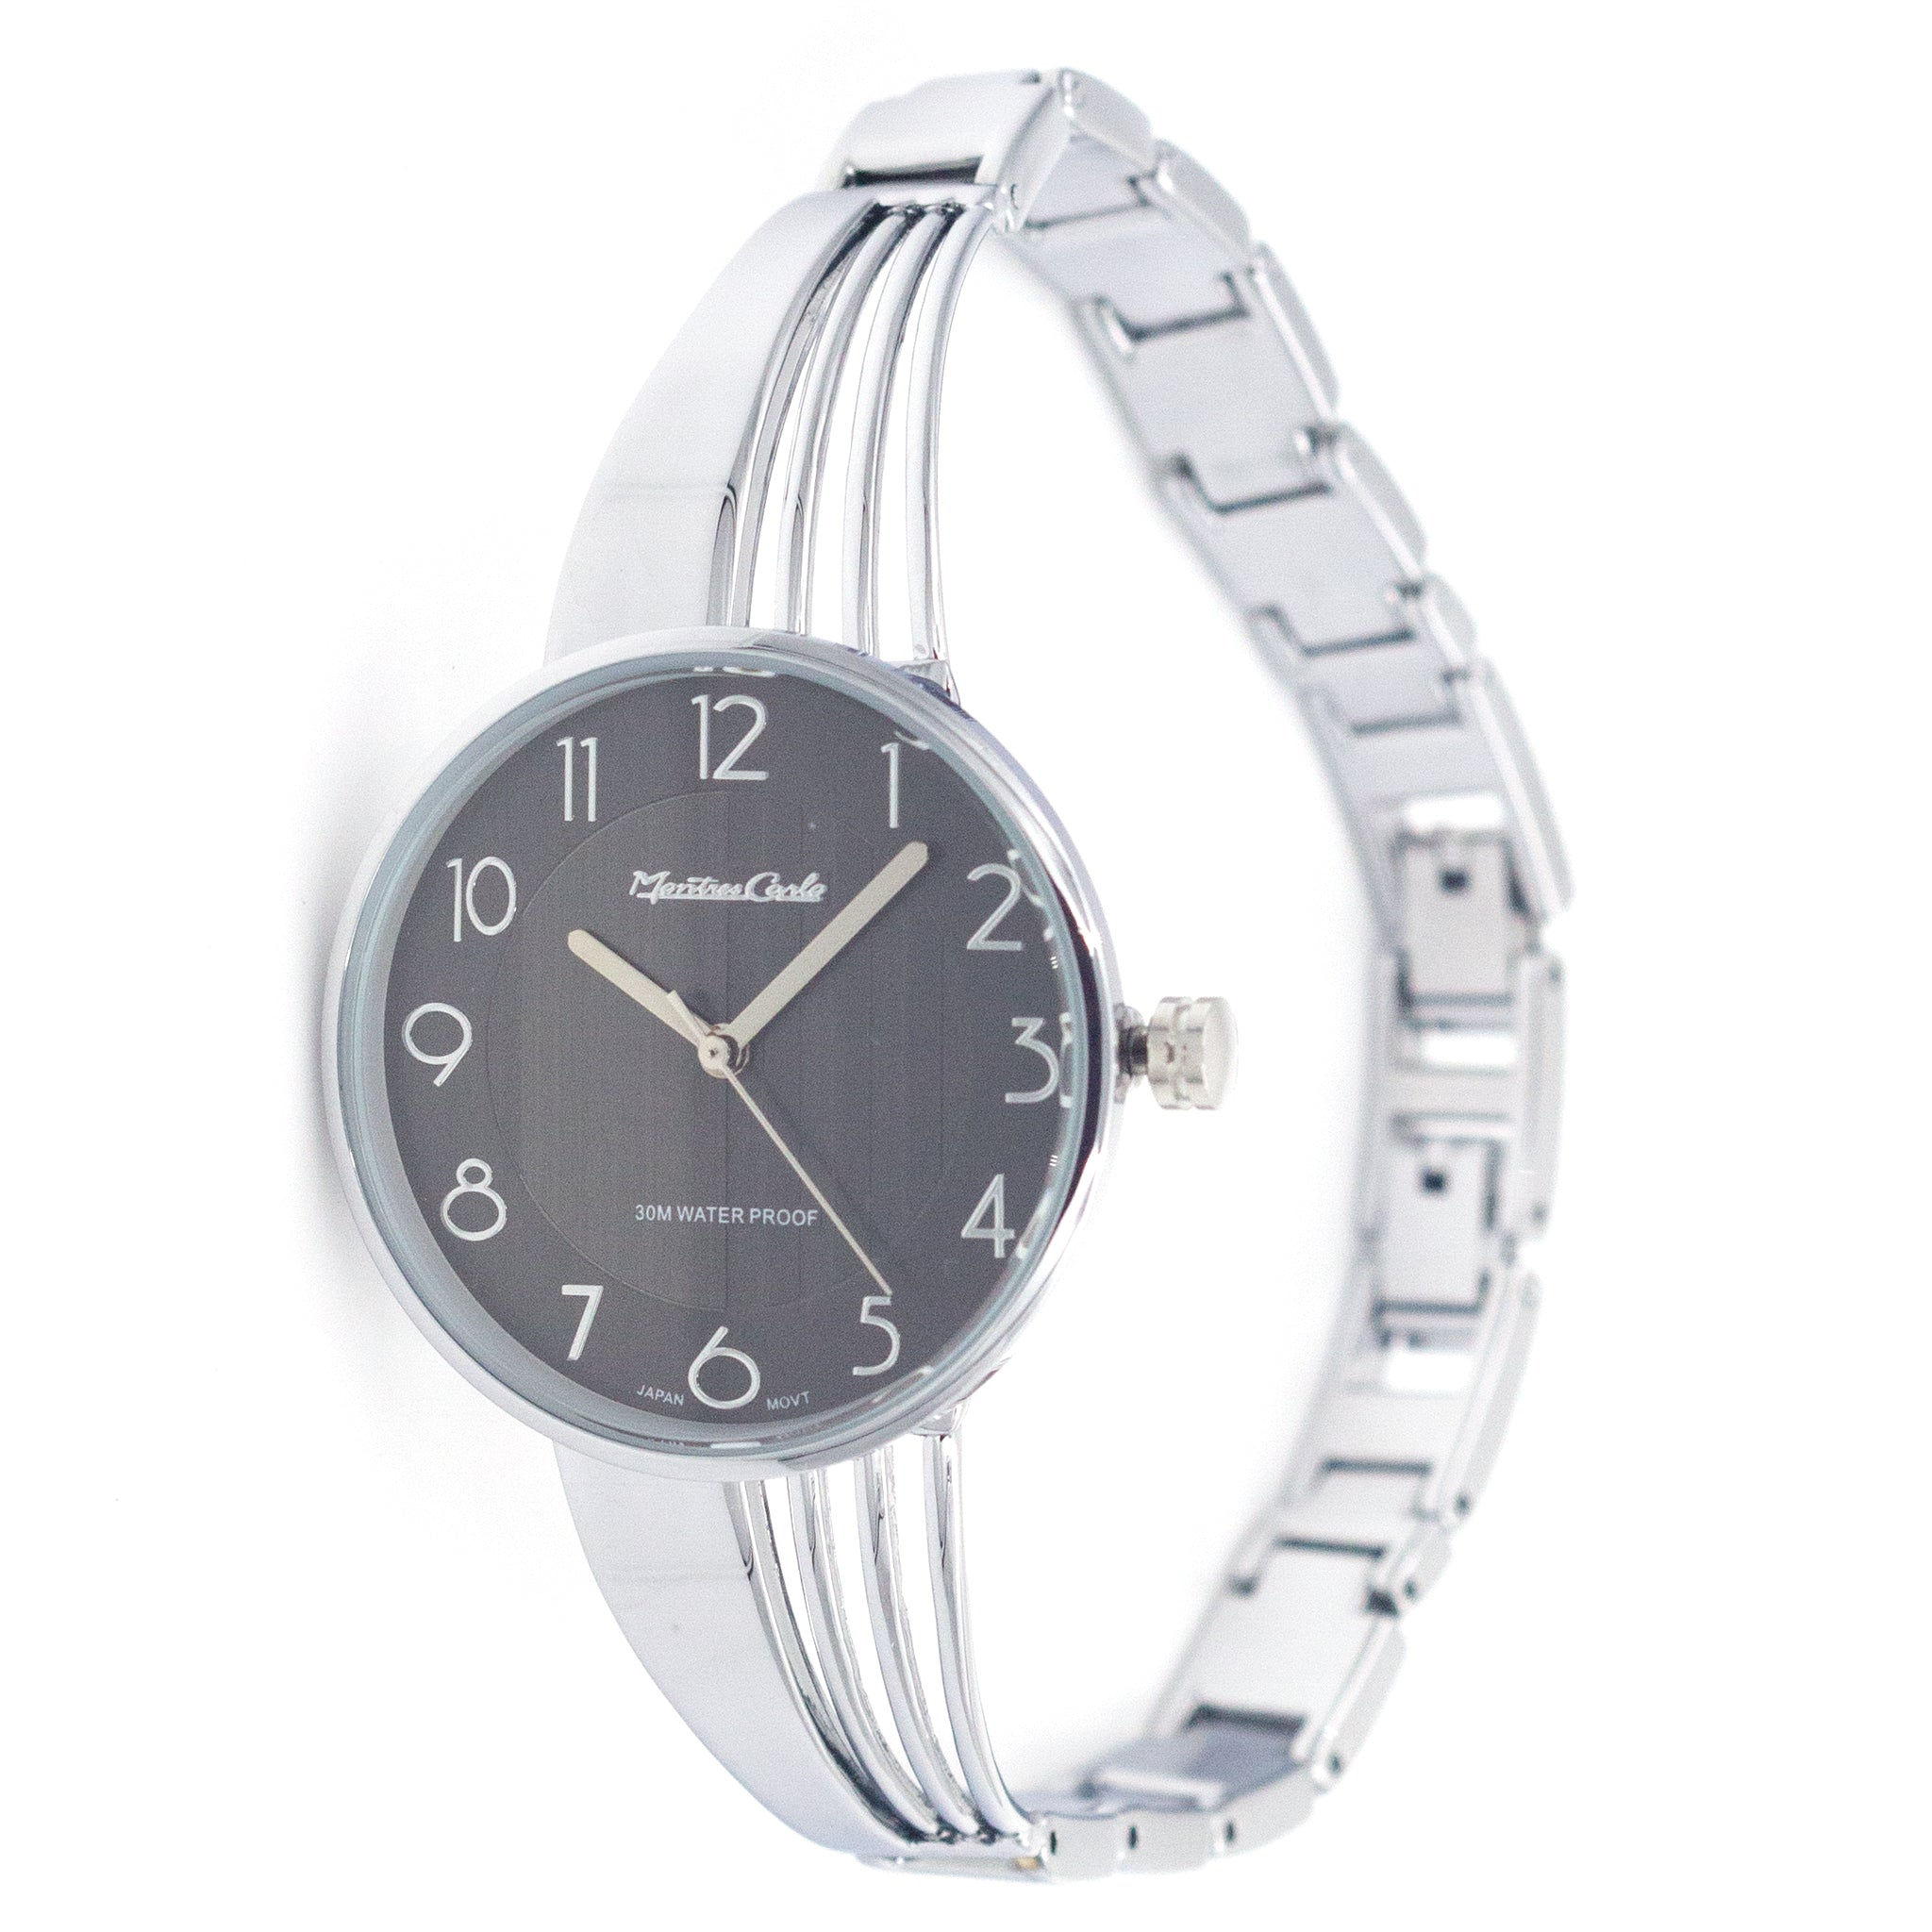 4304 - IP Collection Watch